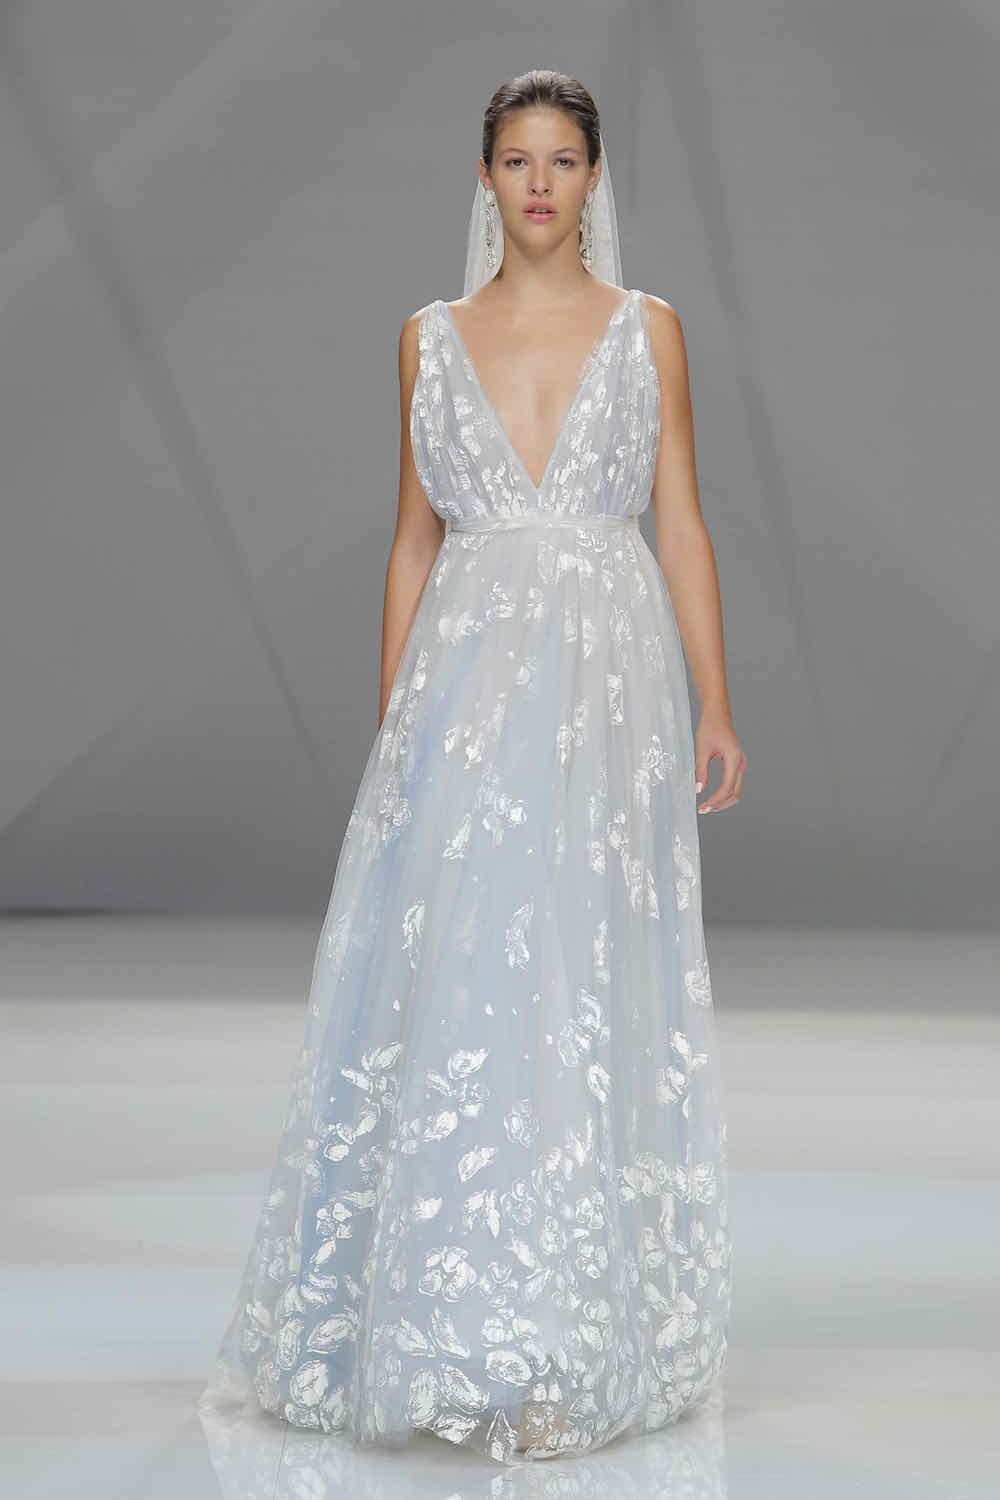 Bridal trend: 15 shades of grey - Absolutely Weddings